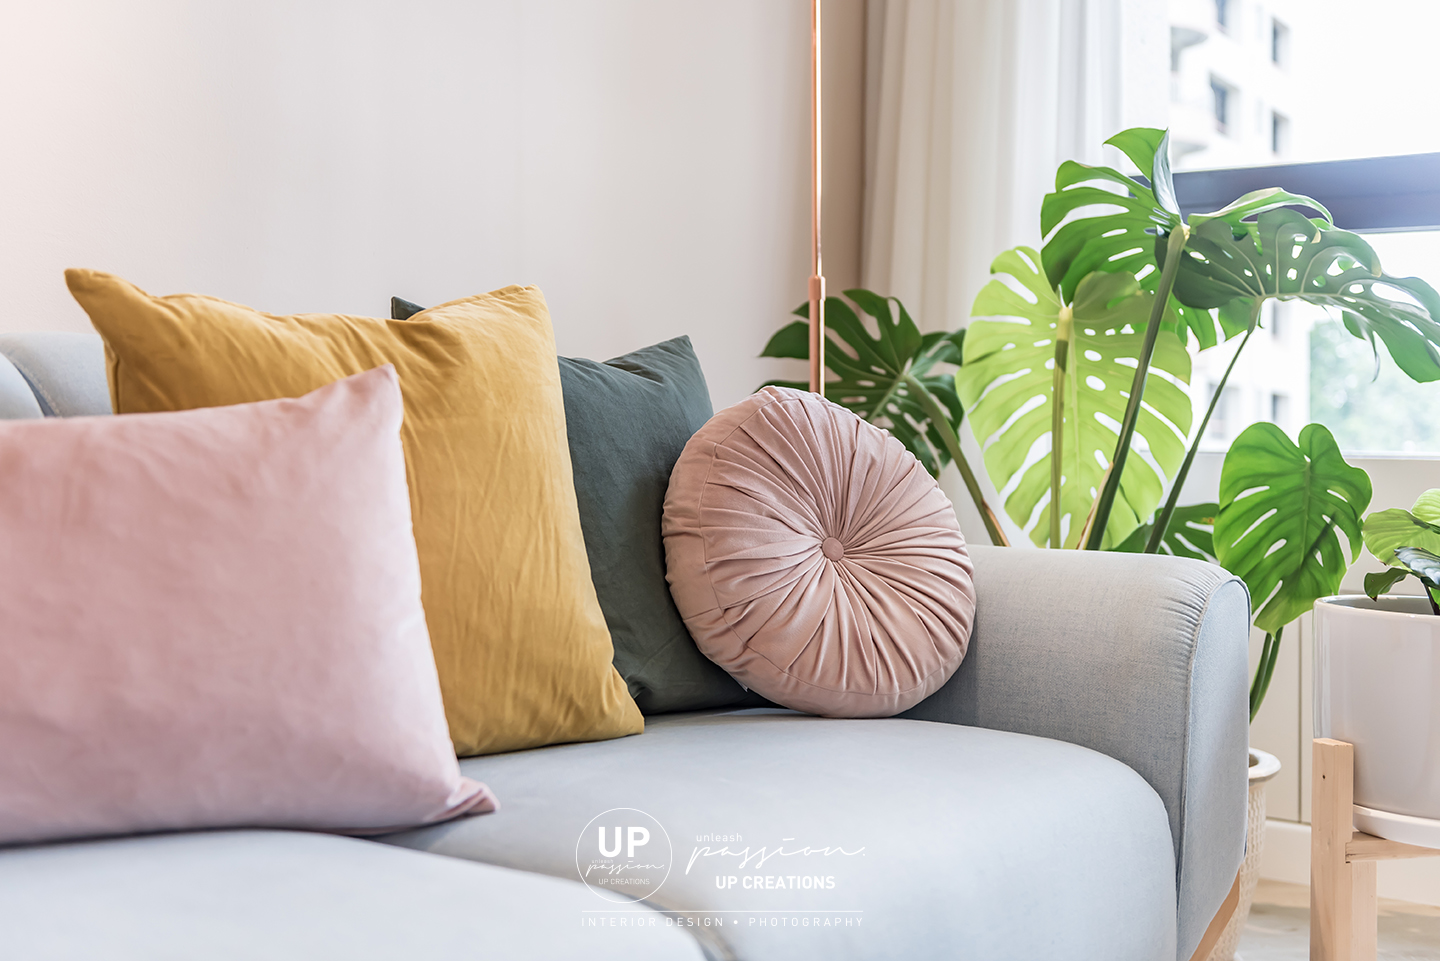 Mont Kiara Pines condo pastel blue sofa with earth tone cushion pillow and plants